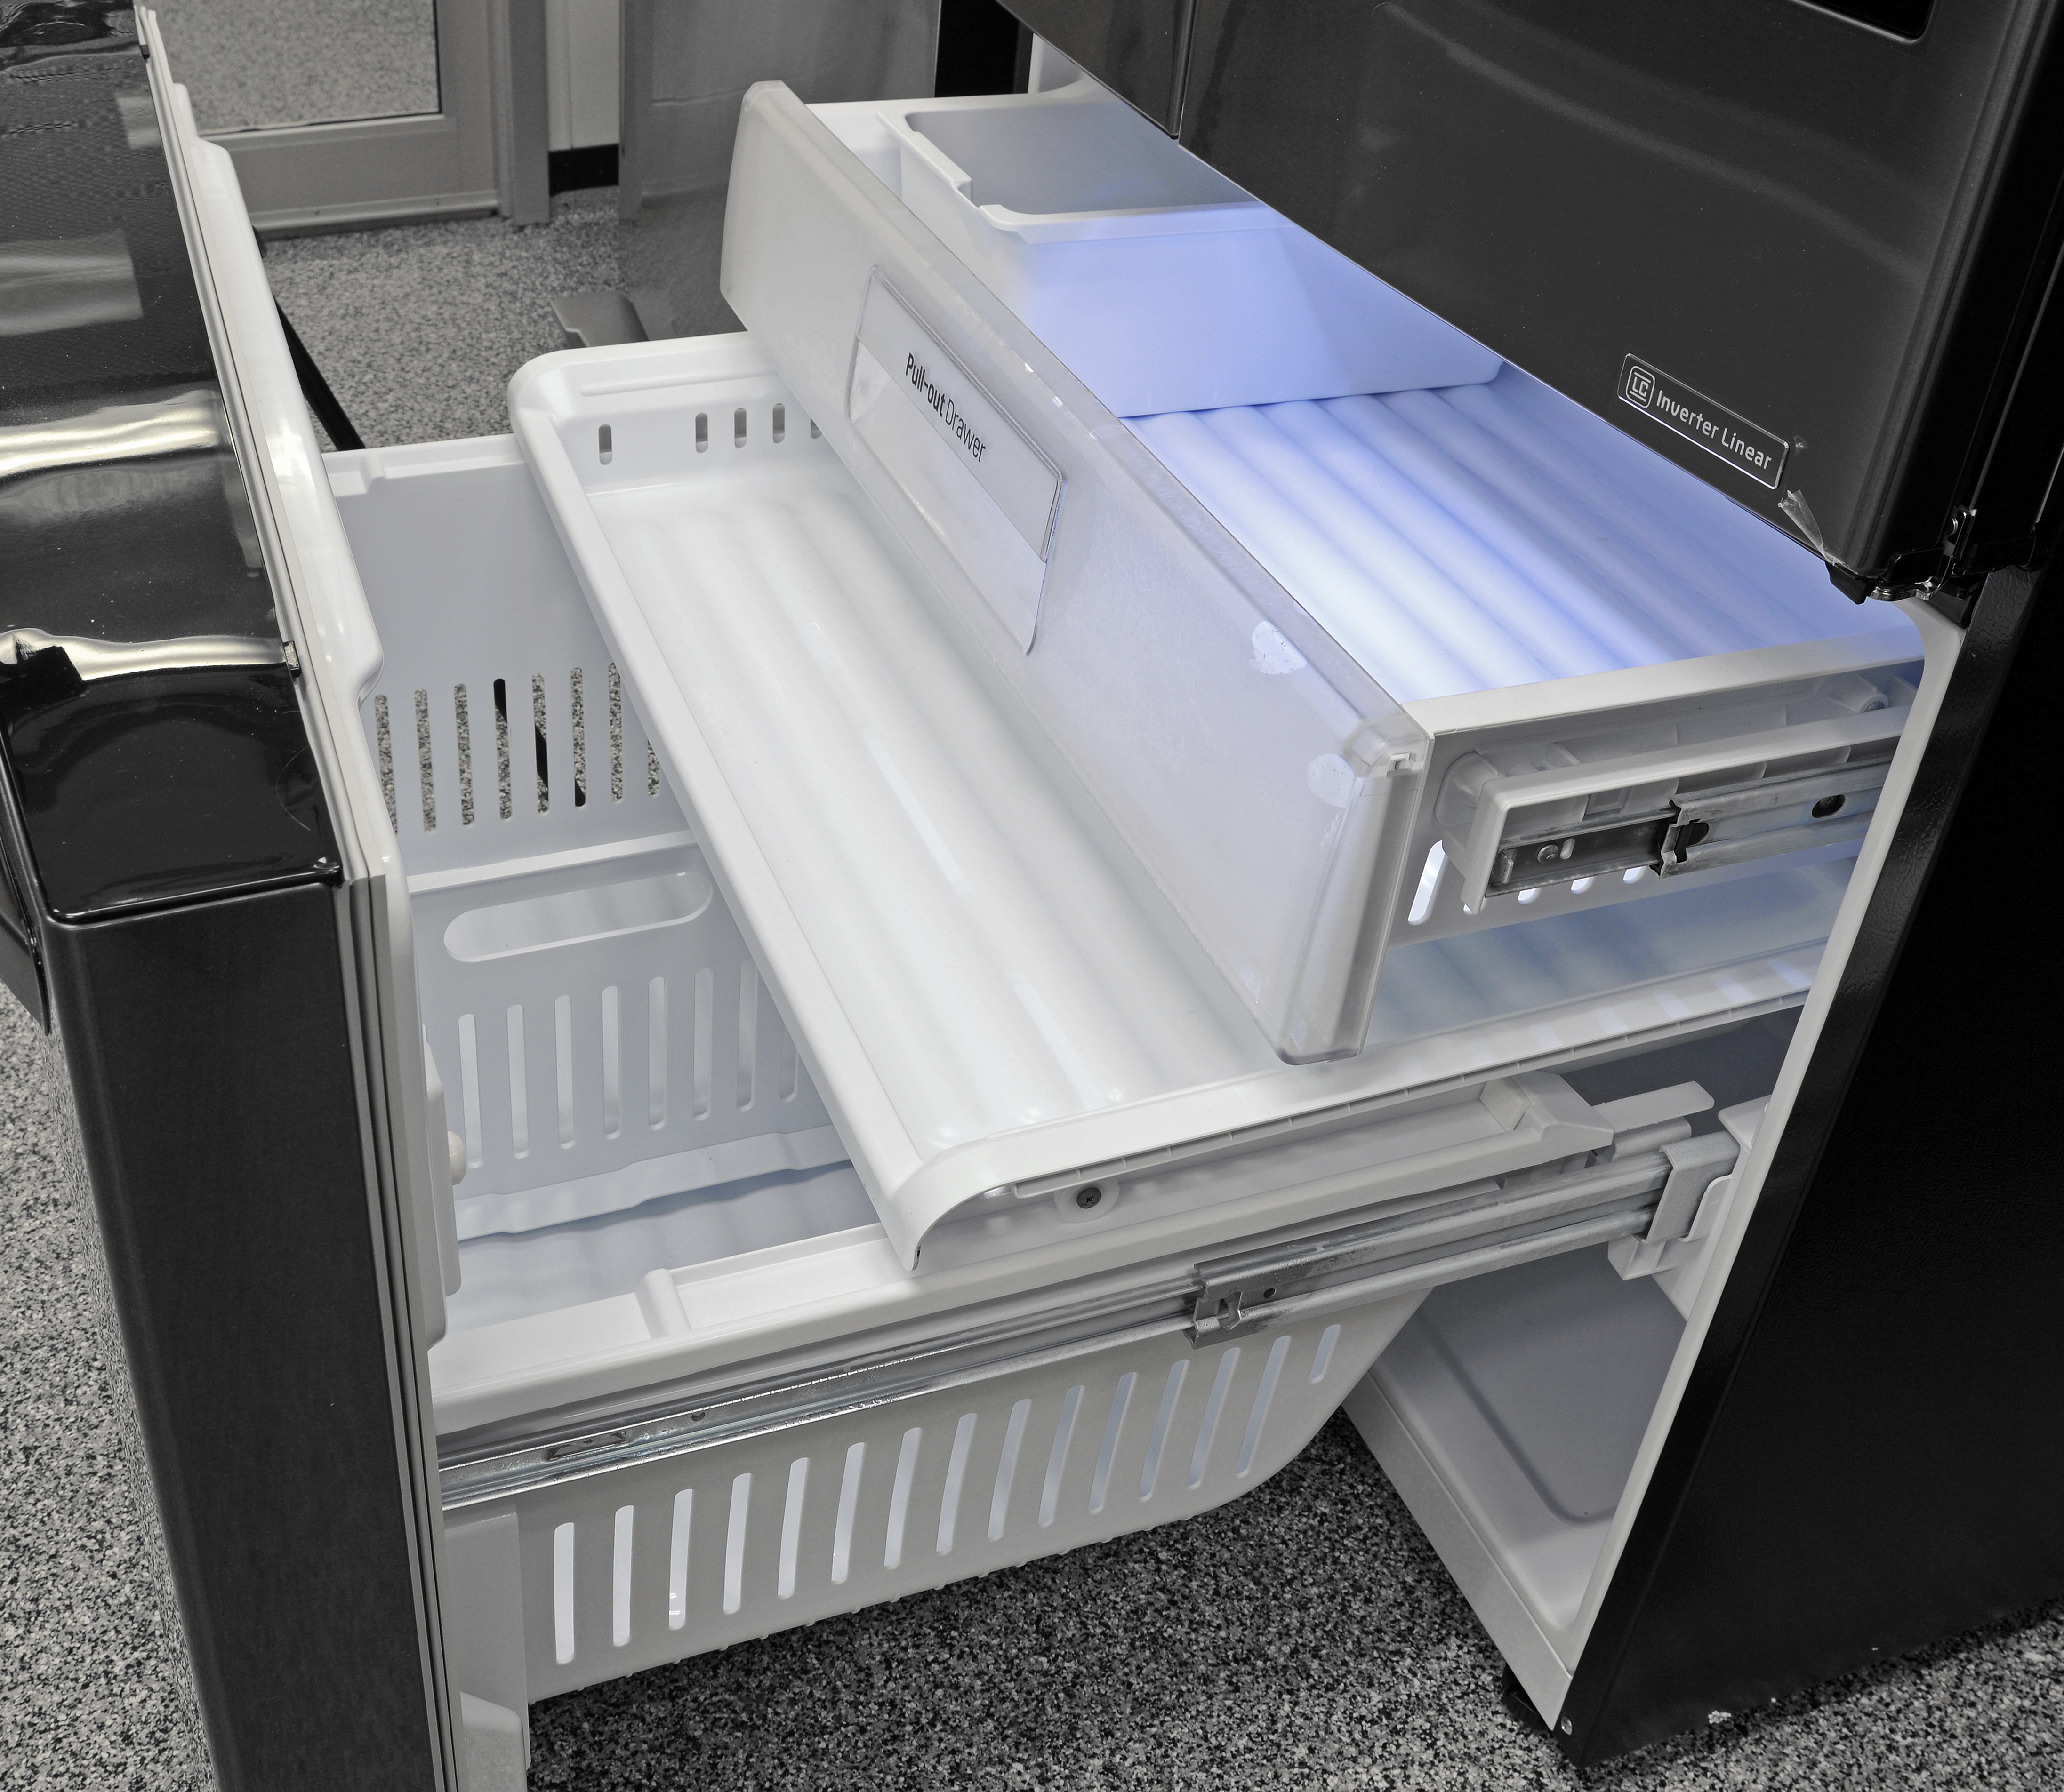 The freezer has three pull-out drawers, as well as a bucket for storing loose items or hoarding bulk ice.